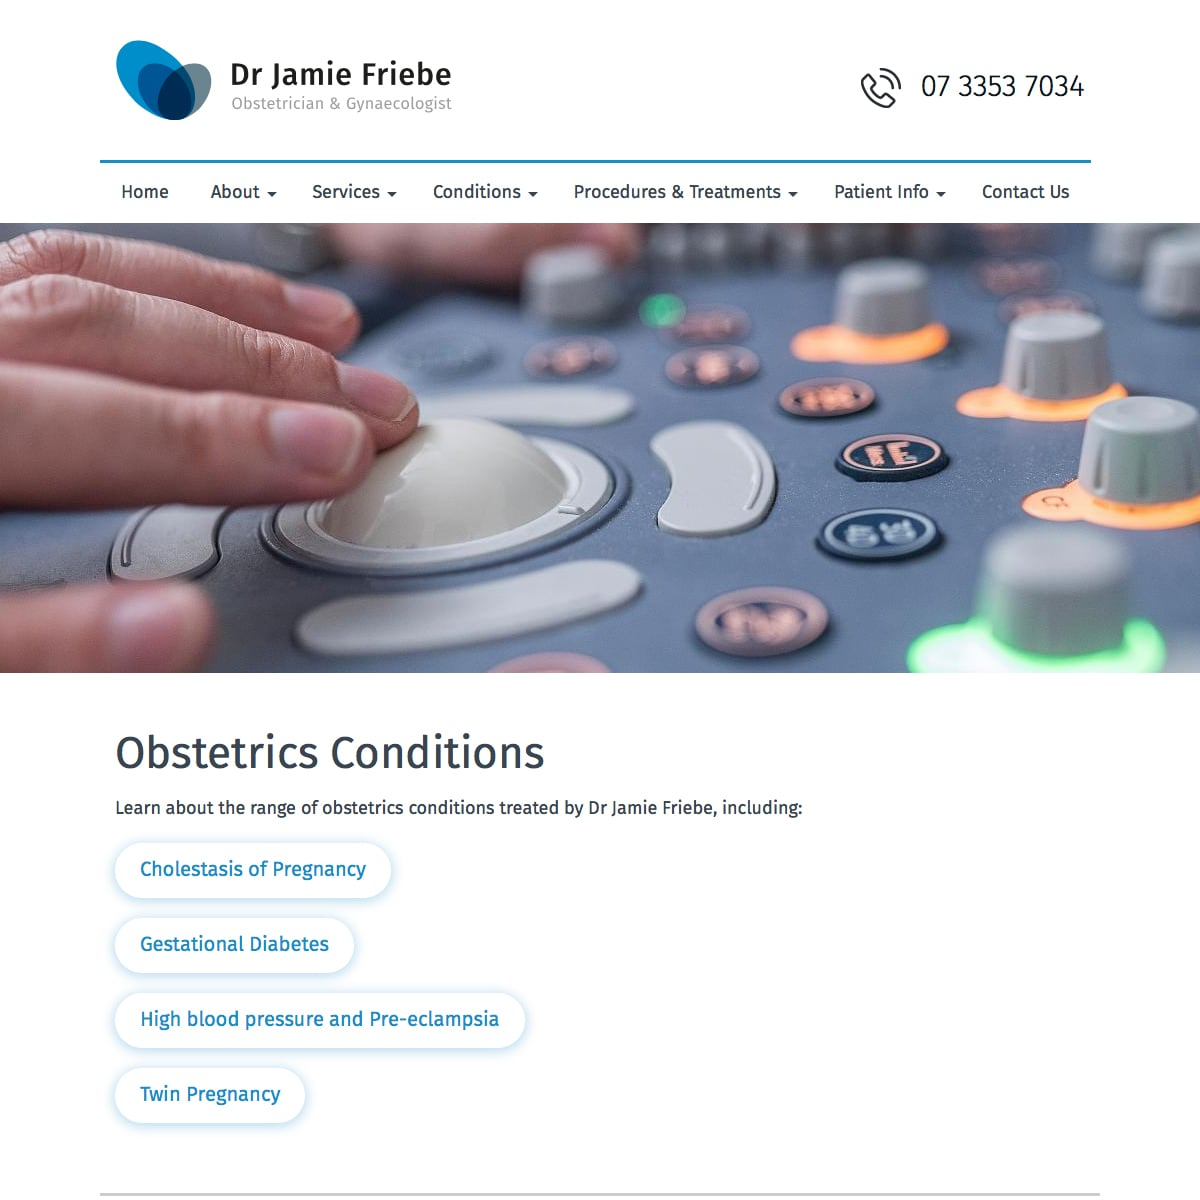 Dr Jamie Friebe - Obstetrics Conditions